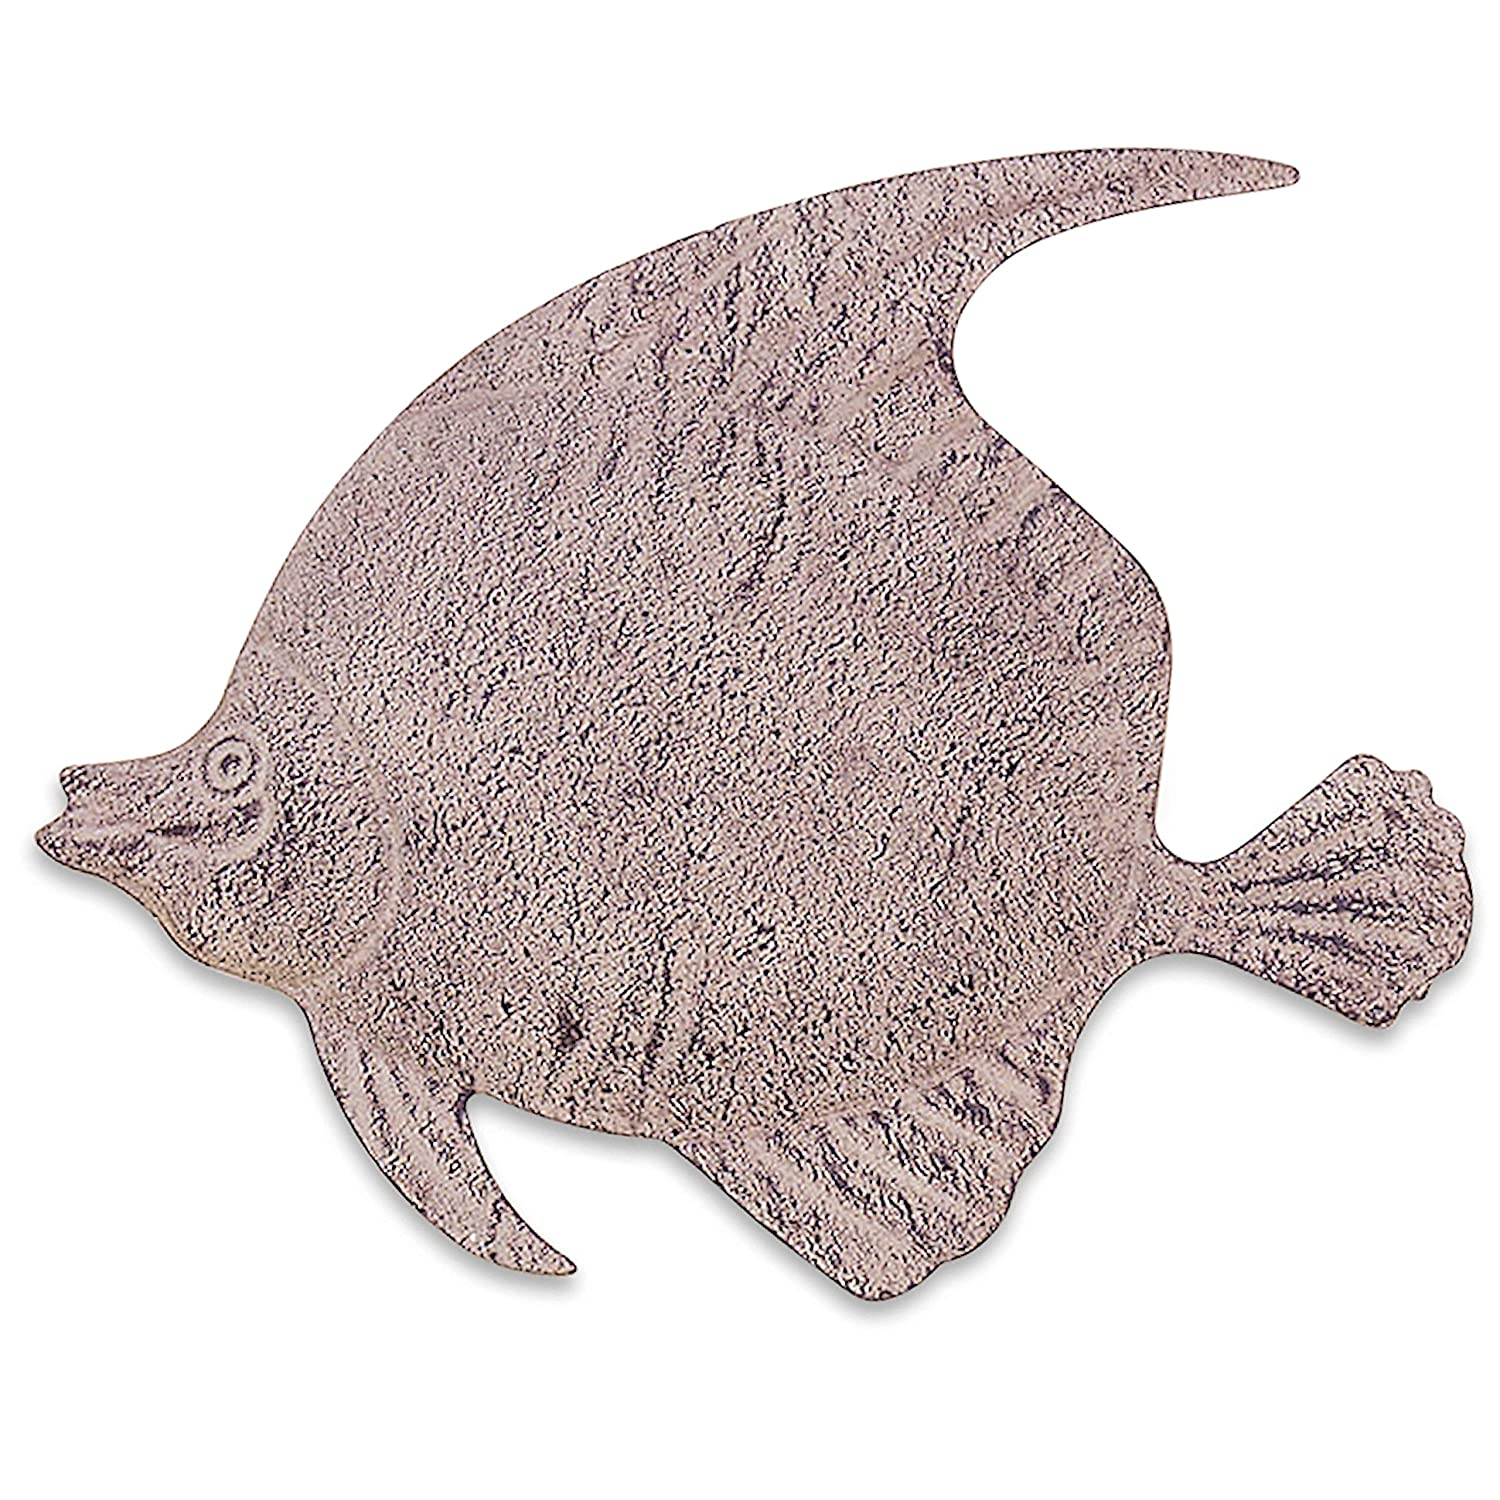 WHW Whole House Worlds Key West Tropical Fish, Hand Crafted Rustic Metal Wall Decor, Antiqued Finish Sand Color Paint, 11 3/4 Inches